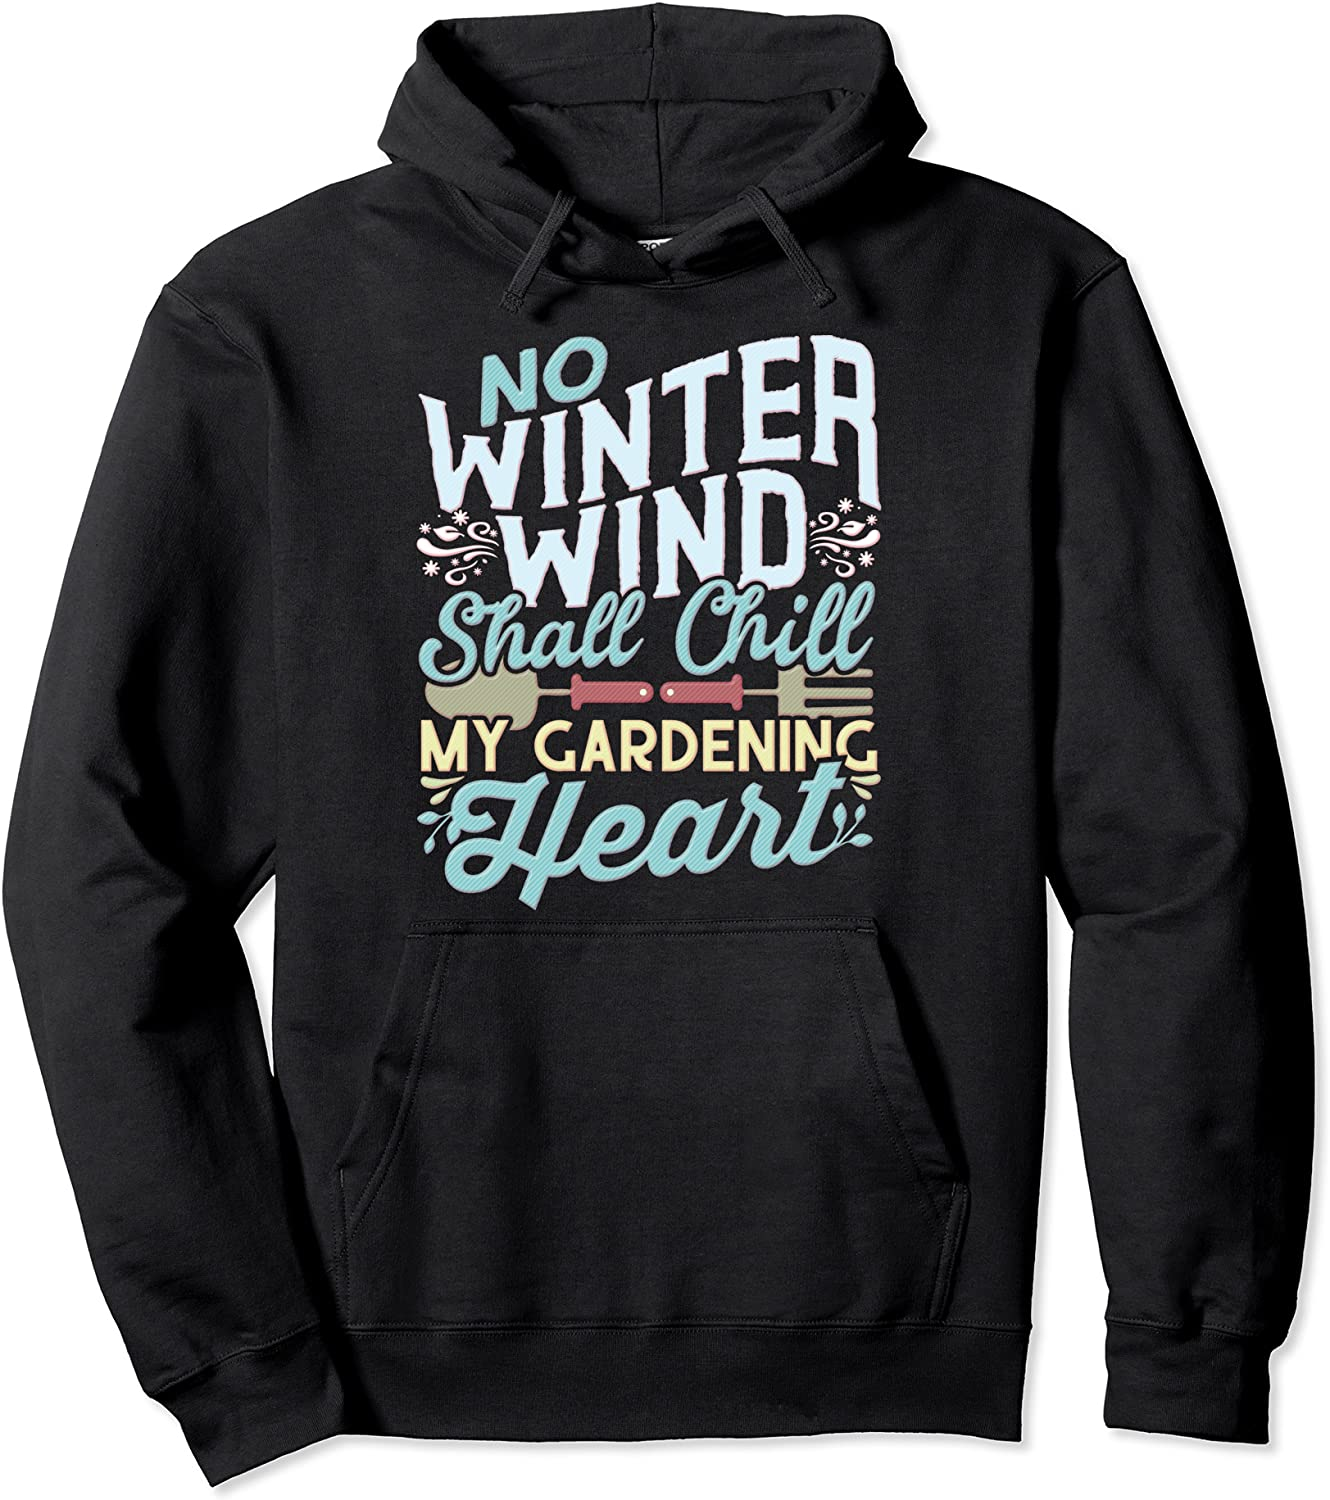 No Winter Wind Shall Chill My Gardening Heart Pullover Hoodie-TH